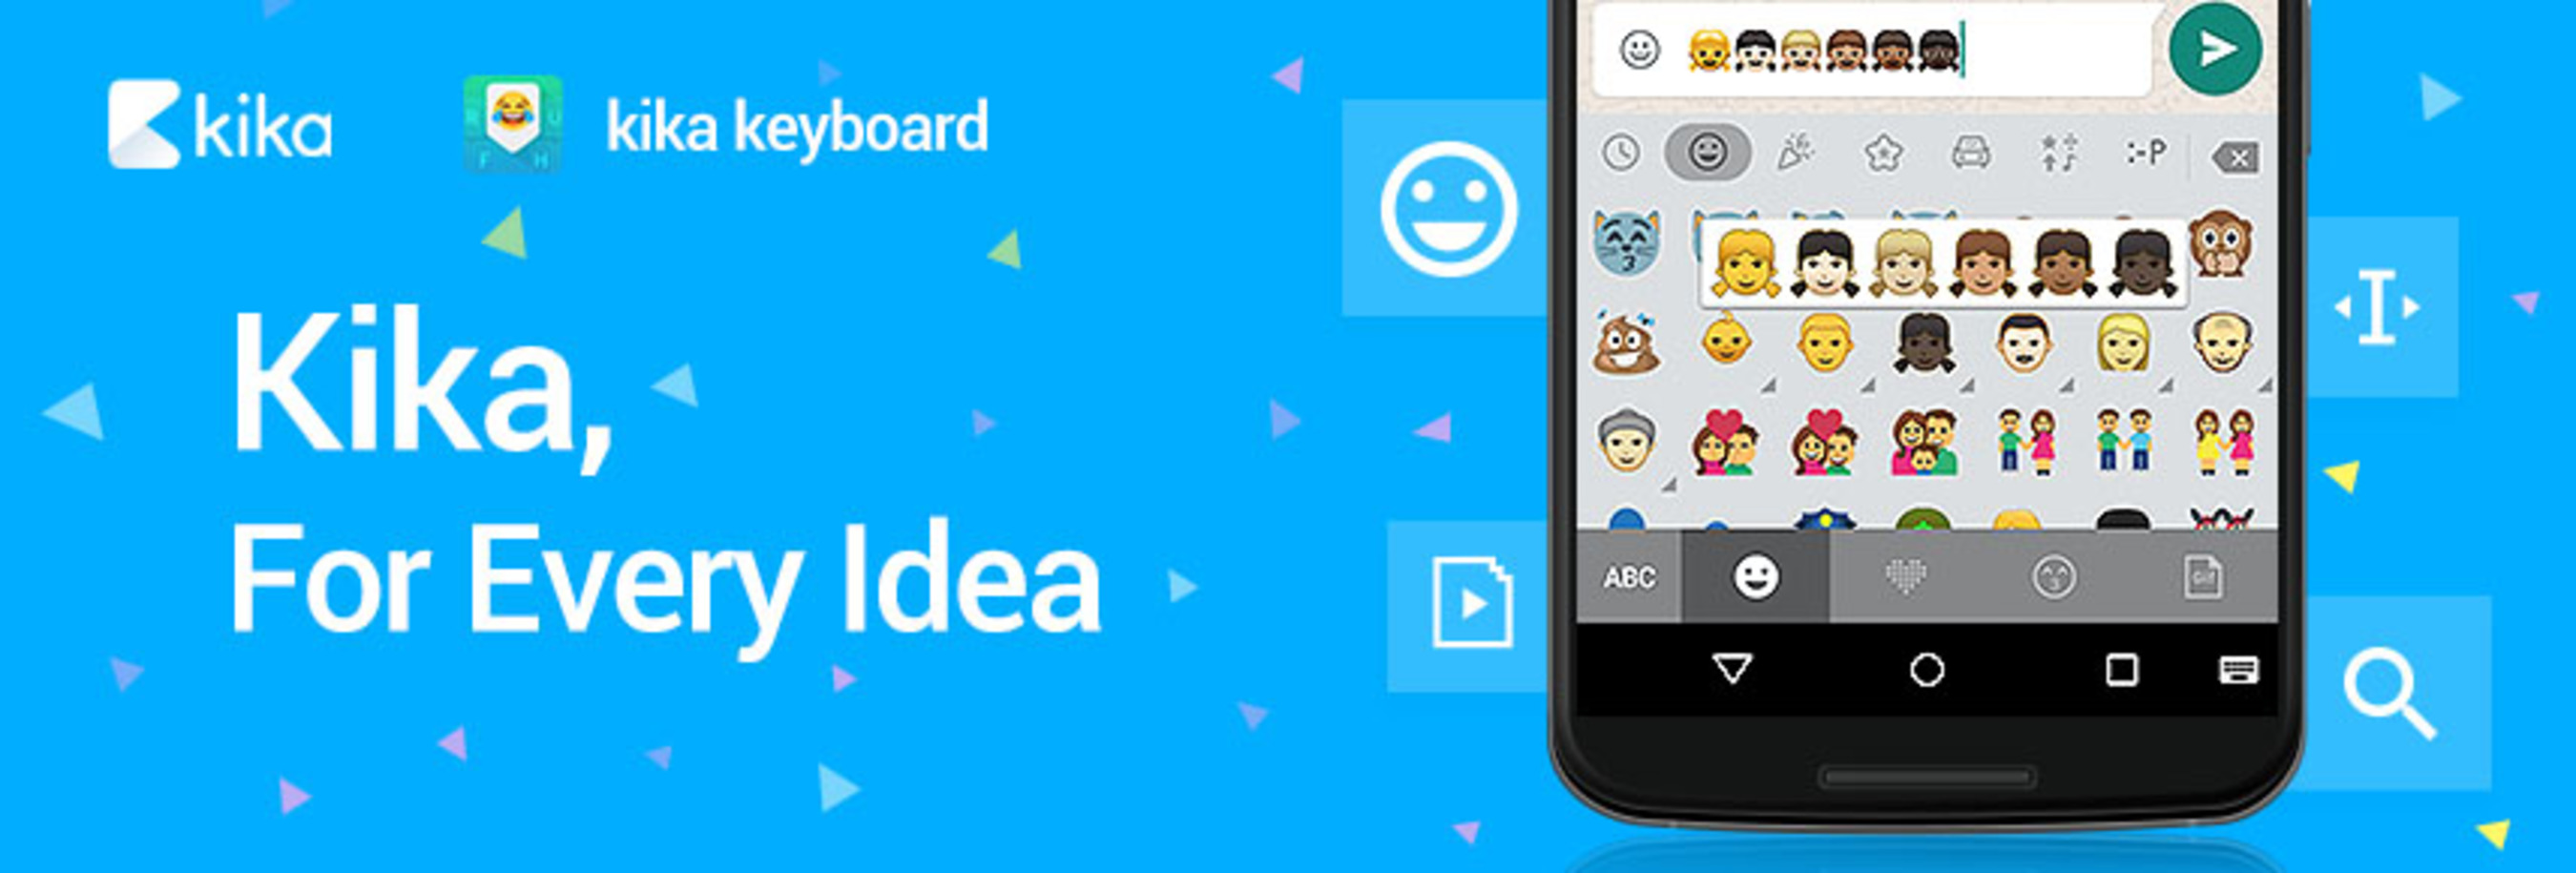 Kika Com Kika Keyboard Becomes The 1st Keyboard With Native Support For